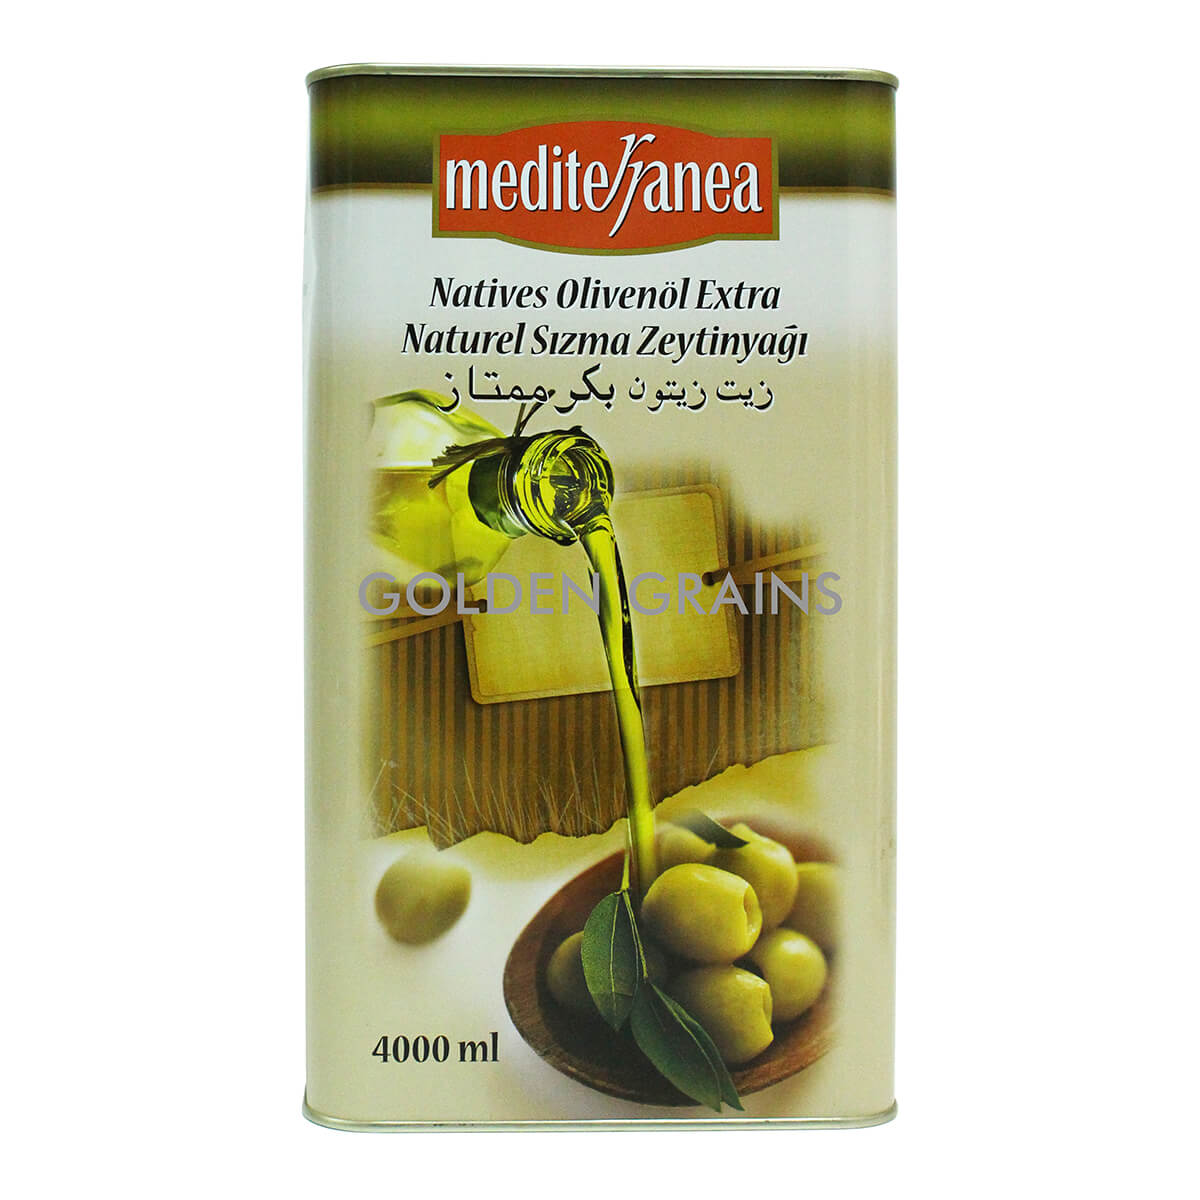 Golden Grains Mediterranea - Olive Oil - 4000ML - Front.jpg